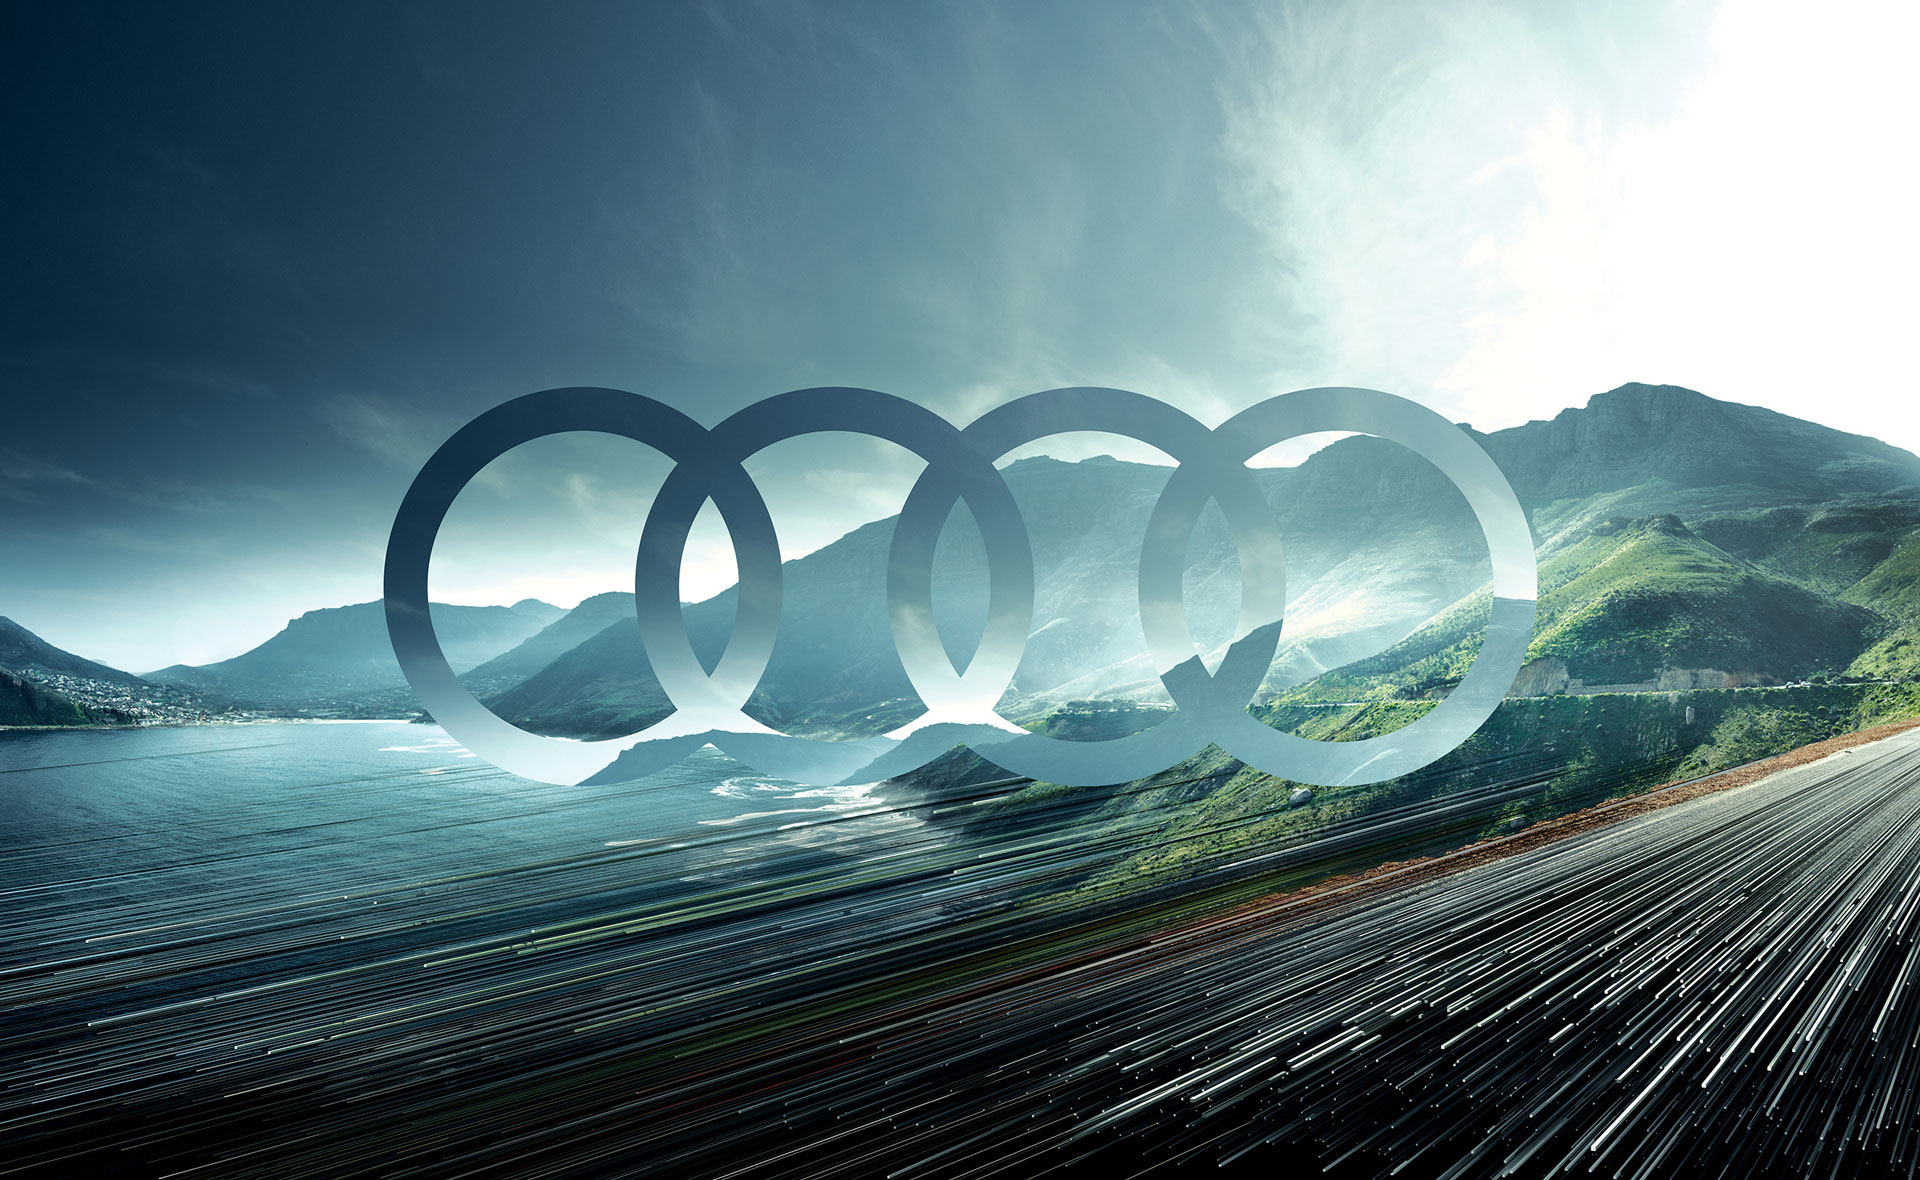 The new Audi logo, which adapts to the mountain scenery in the background.